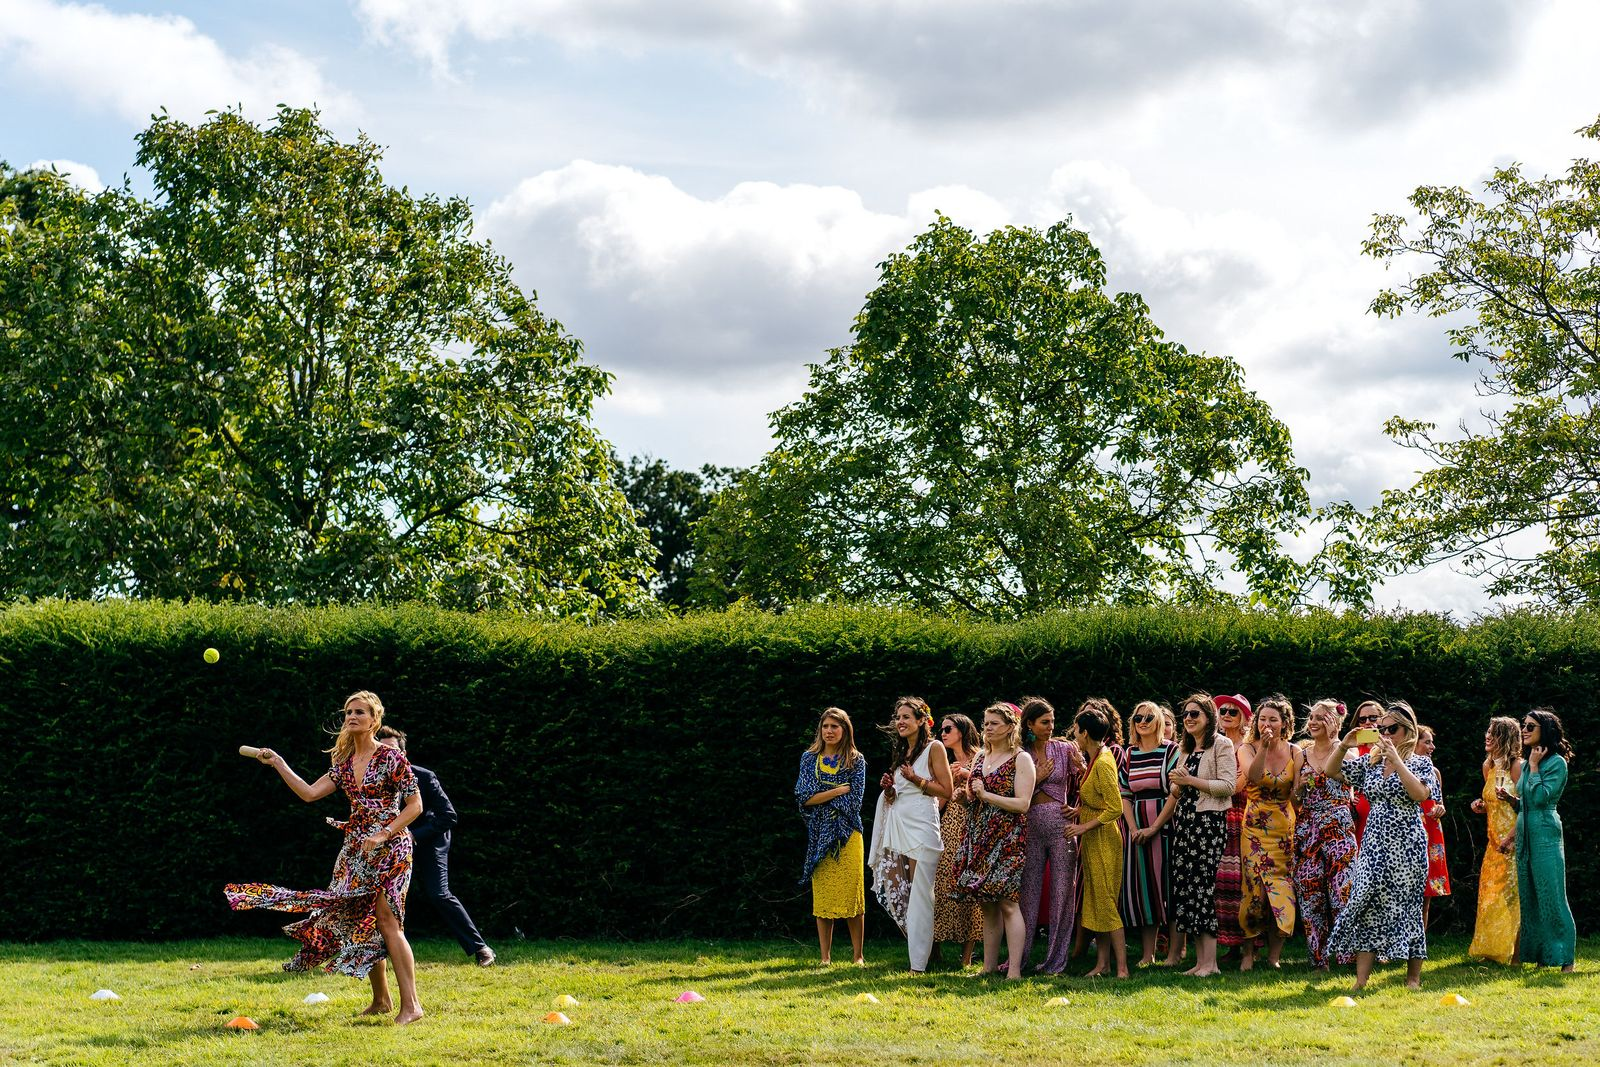 Rounders and garden games at this country house wedding in Somerset